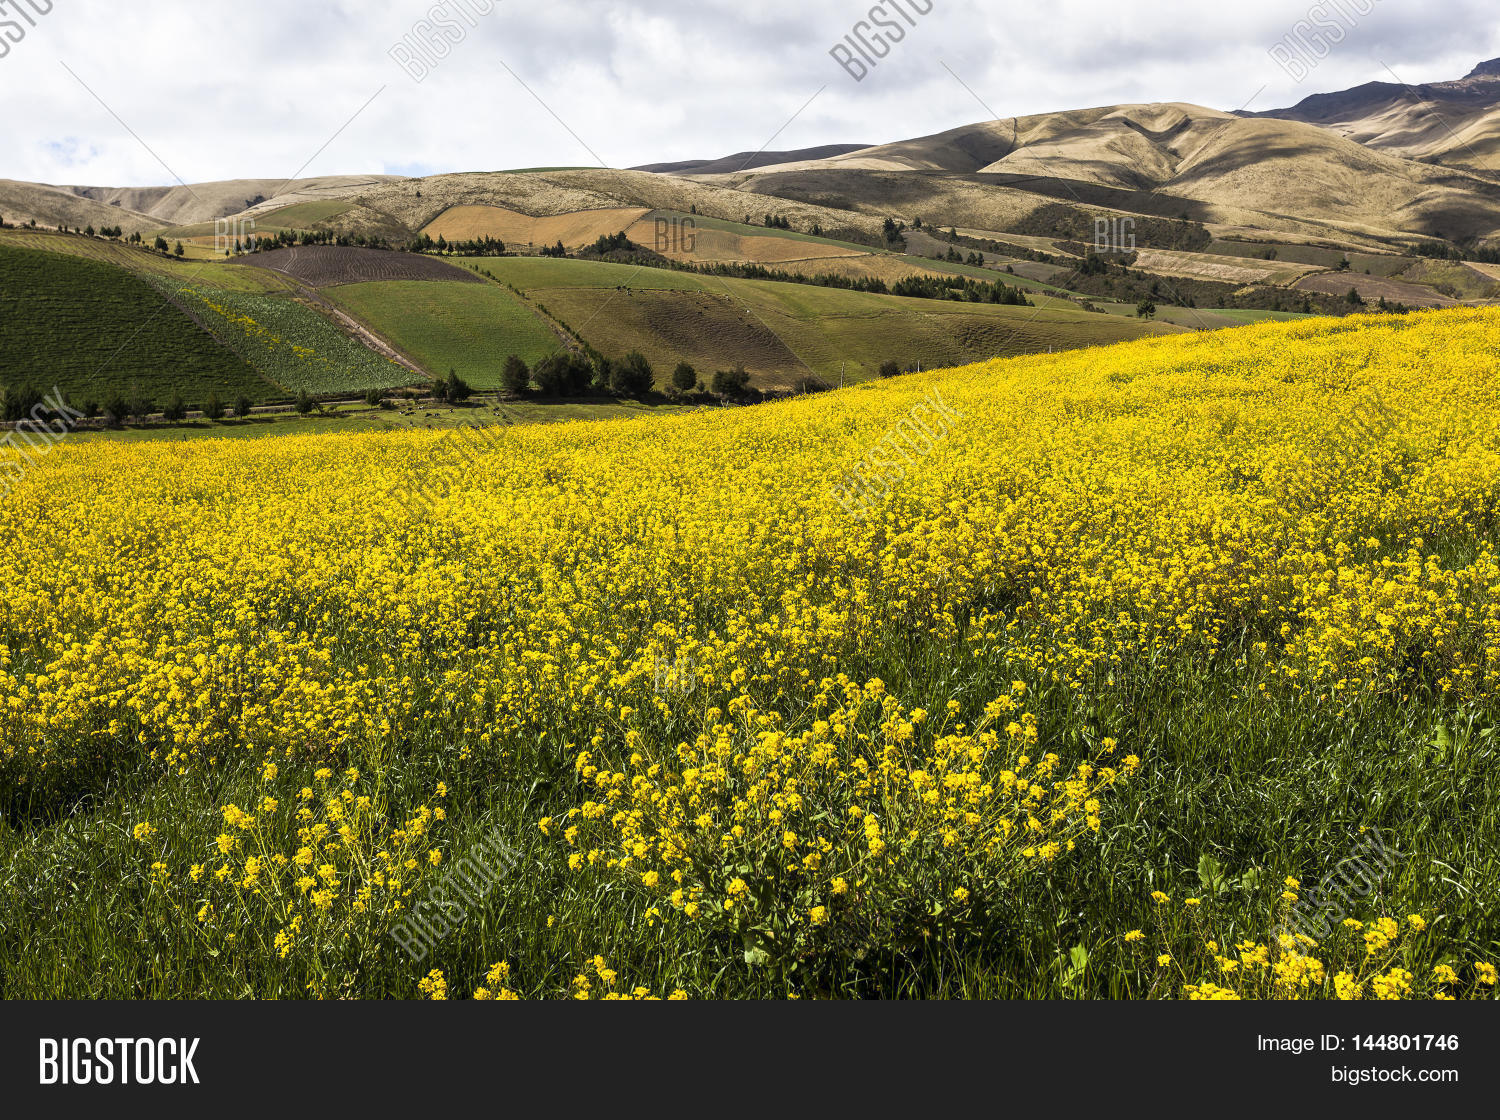 Canola yellow flowers image photo free trial bigstock canola yellow flowers crops in ecuadorian andes mightylinksfo